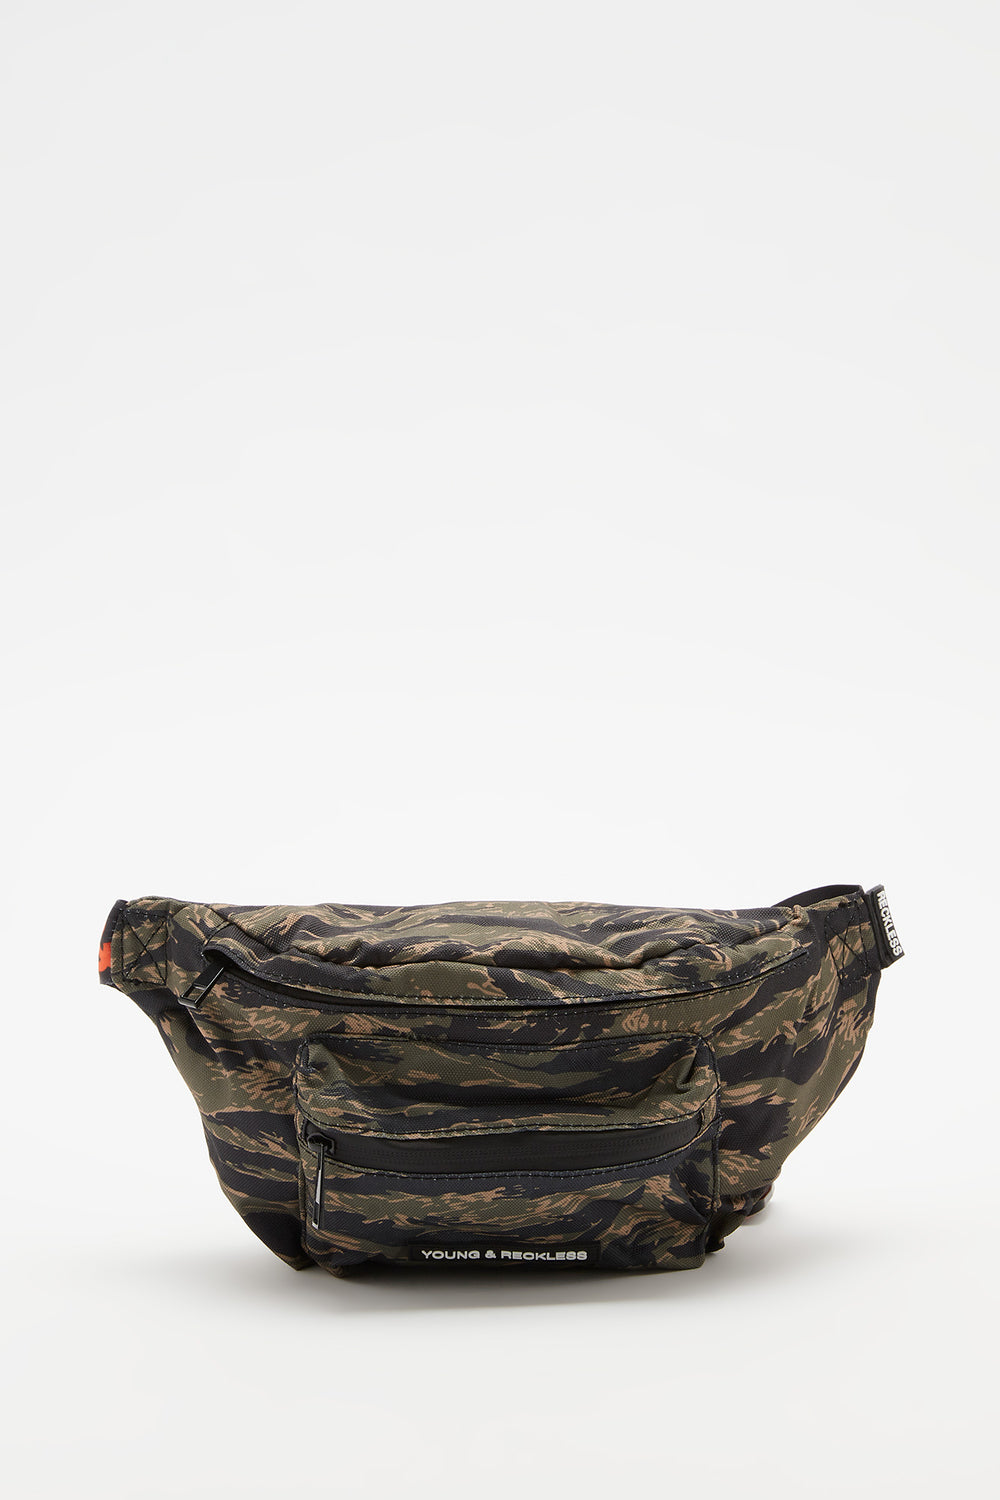 Young & Reckless Camo Fanny Pack Green